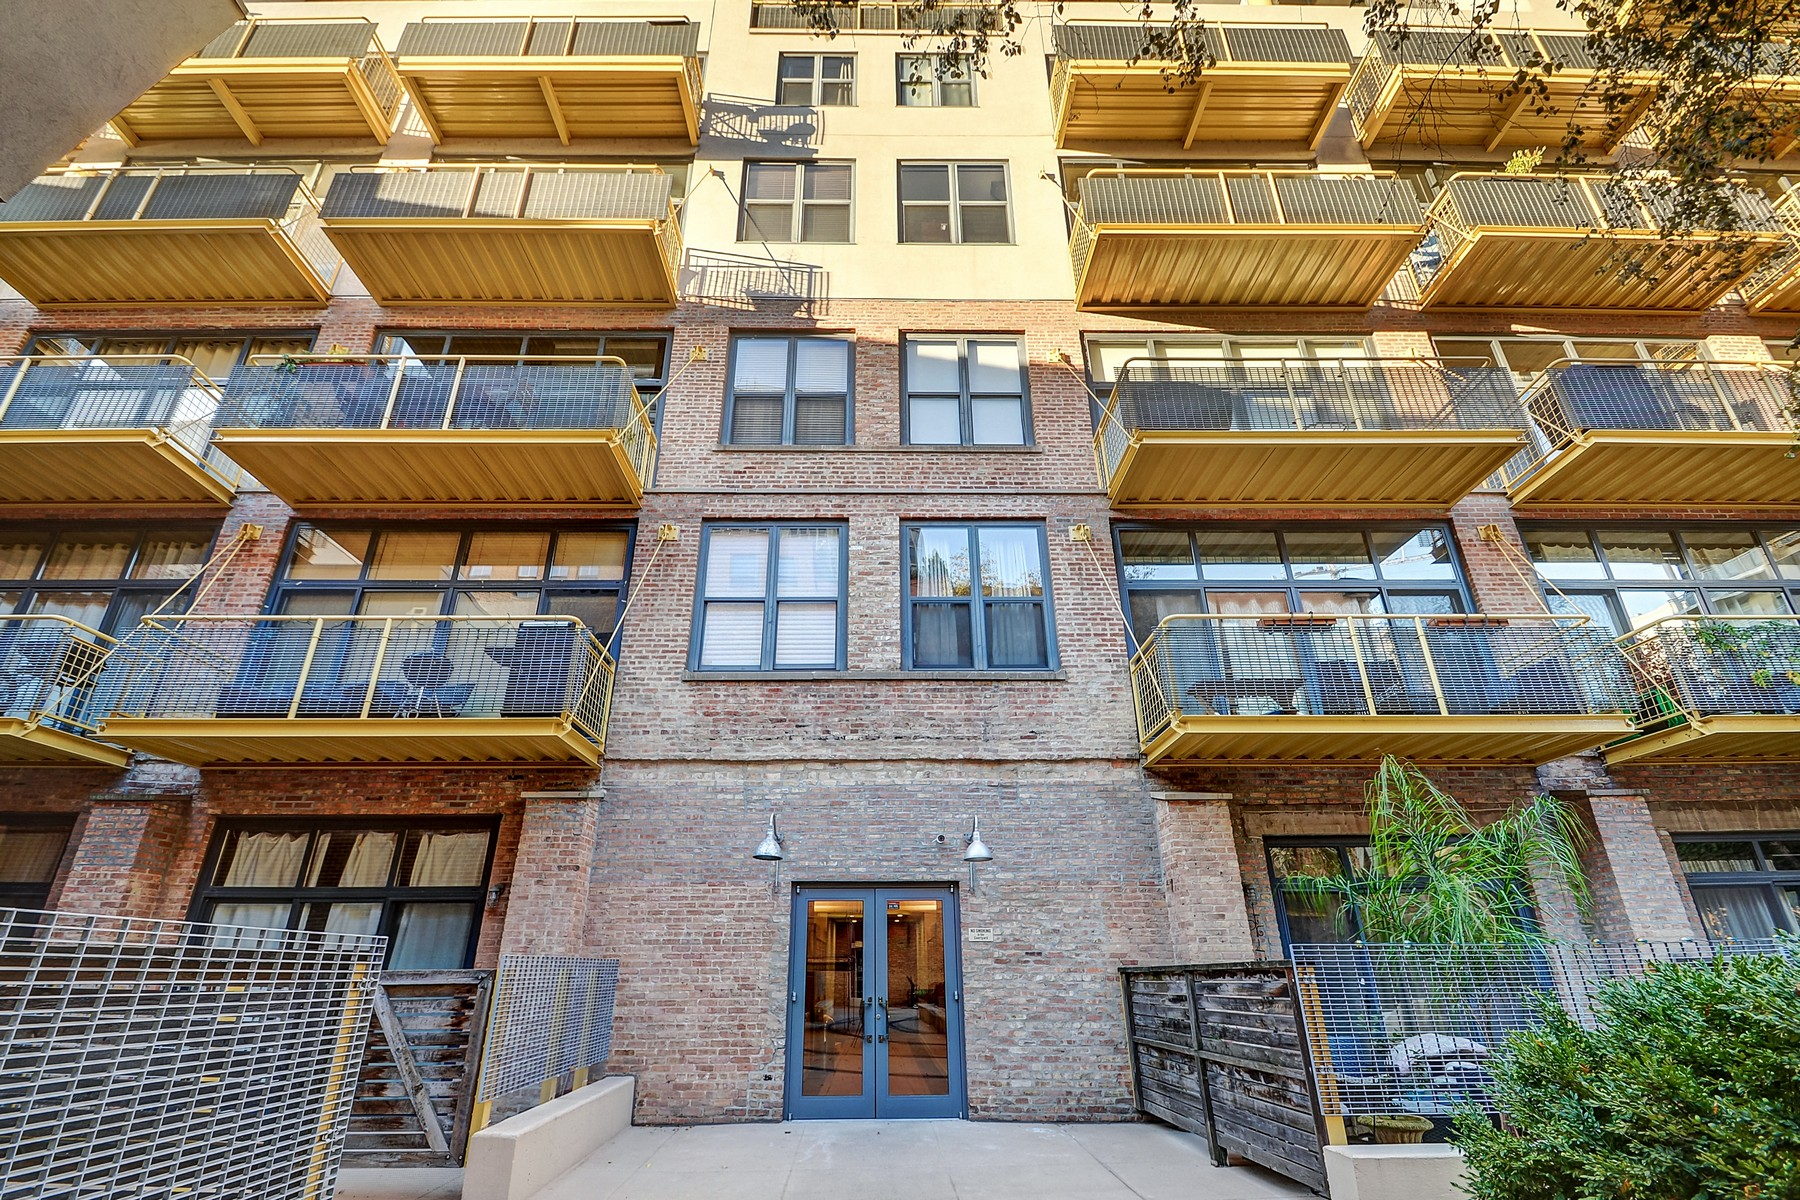 Condominium for Sale at Gorgeous South Loop Home 1910 S Indiana Avenue Unit 117 Chicago, Illinois 60616 United States